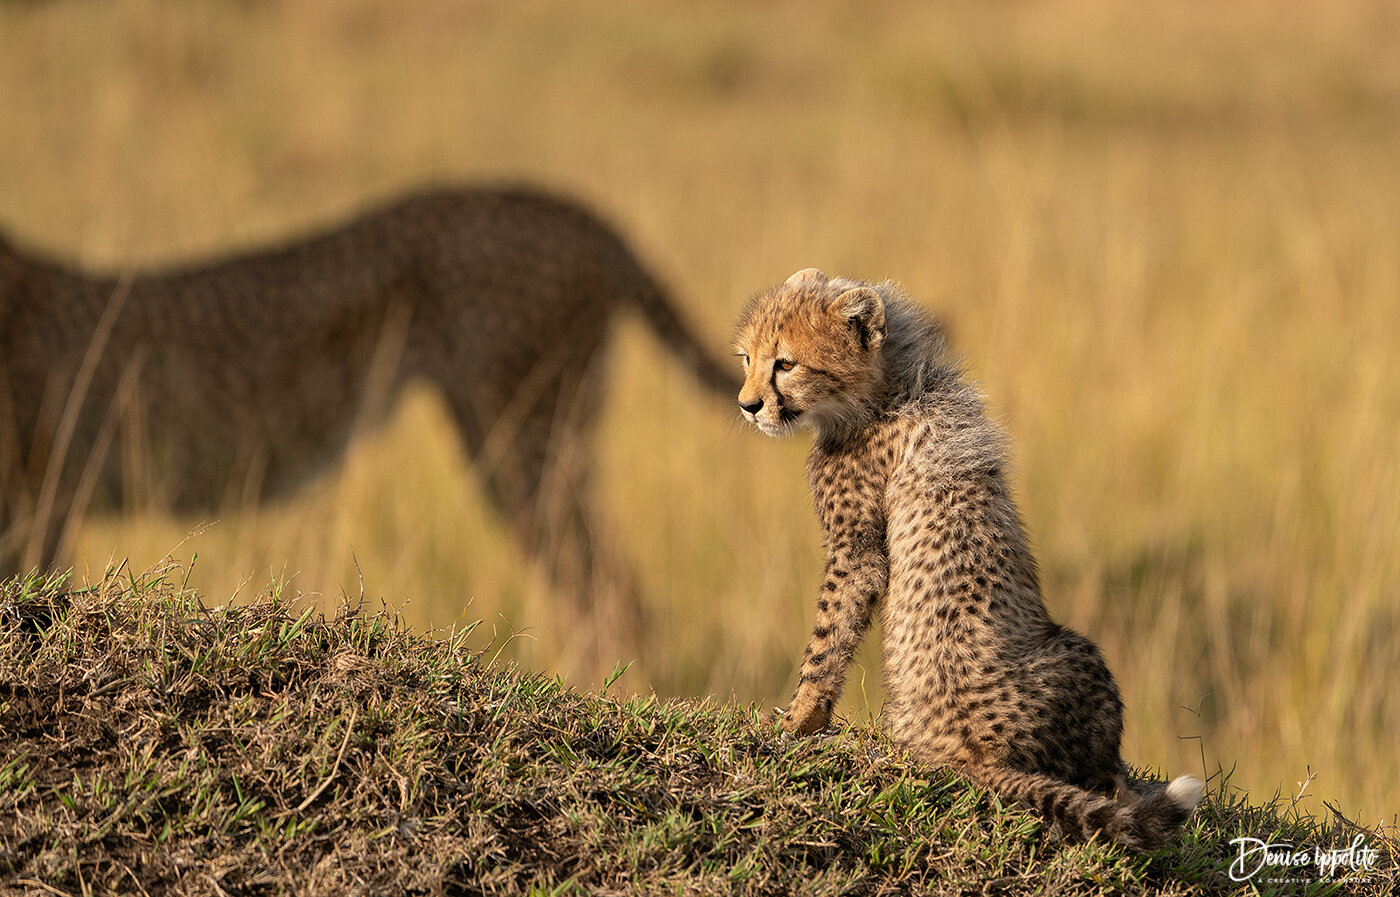 We had the opportunity to photograph 6 Cheetah cubs just outside of the reserve. I loved the way the tail of the adult seems to be touching the cub.